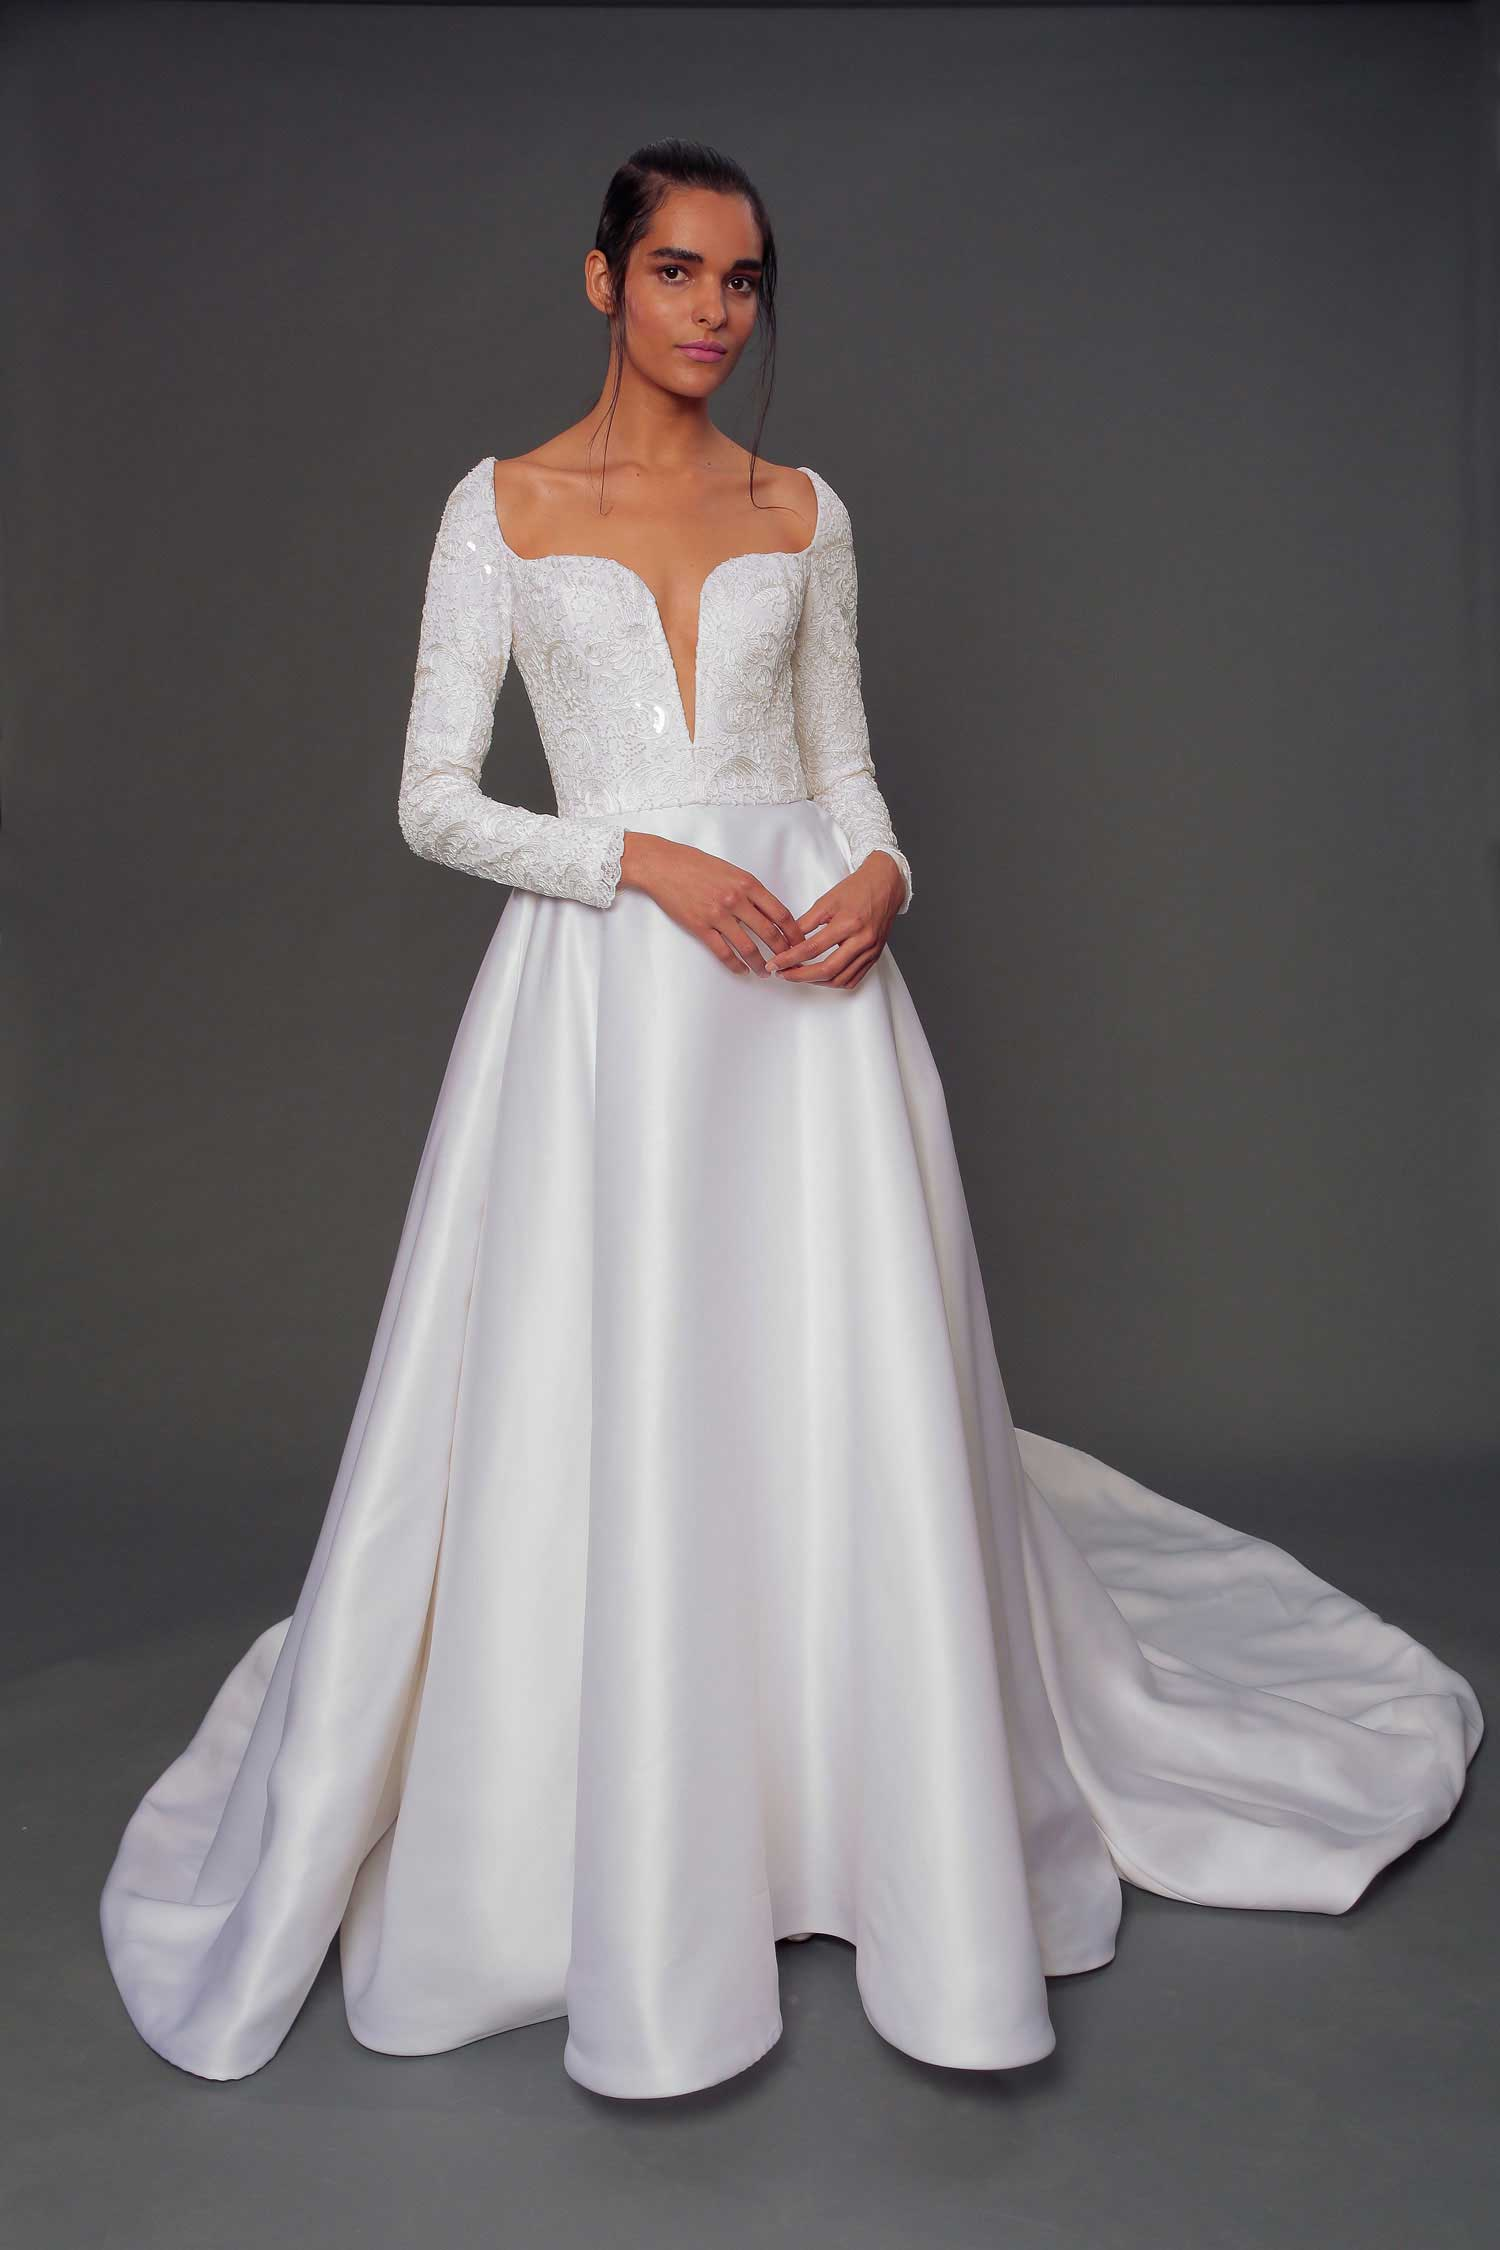 long sleeve wedding dress arlette isabelle armstrong plungine neckline long sleeves